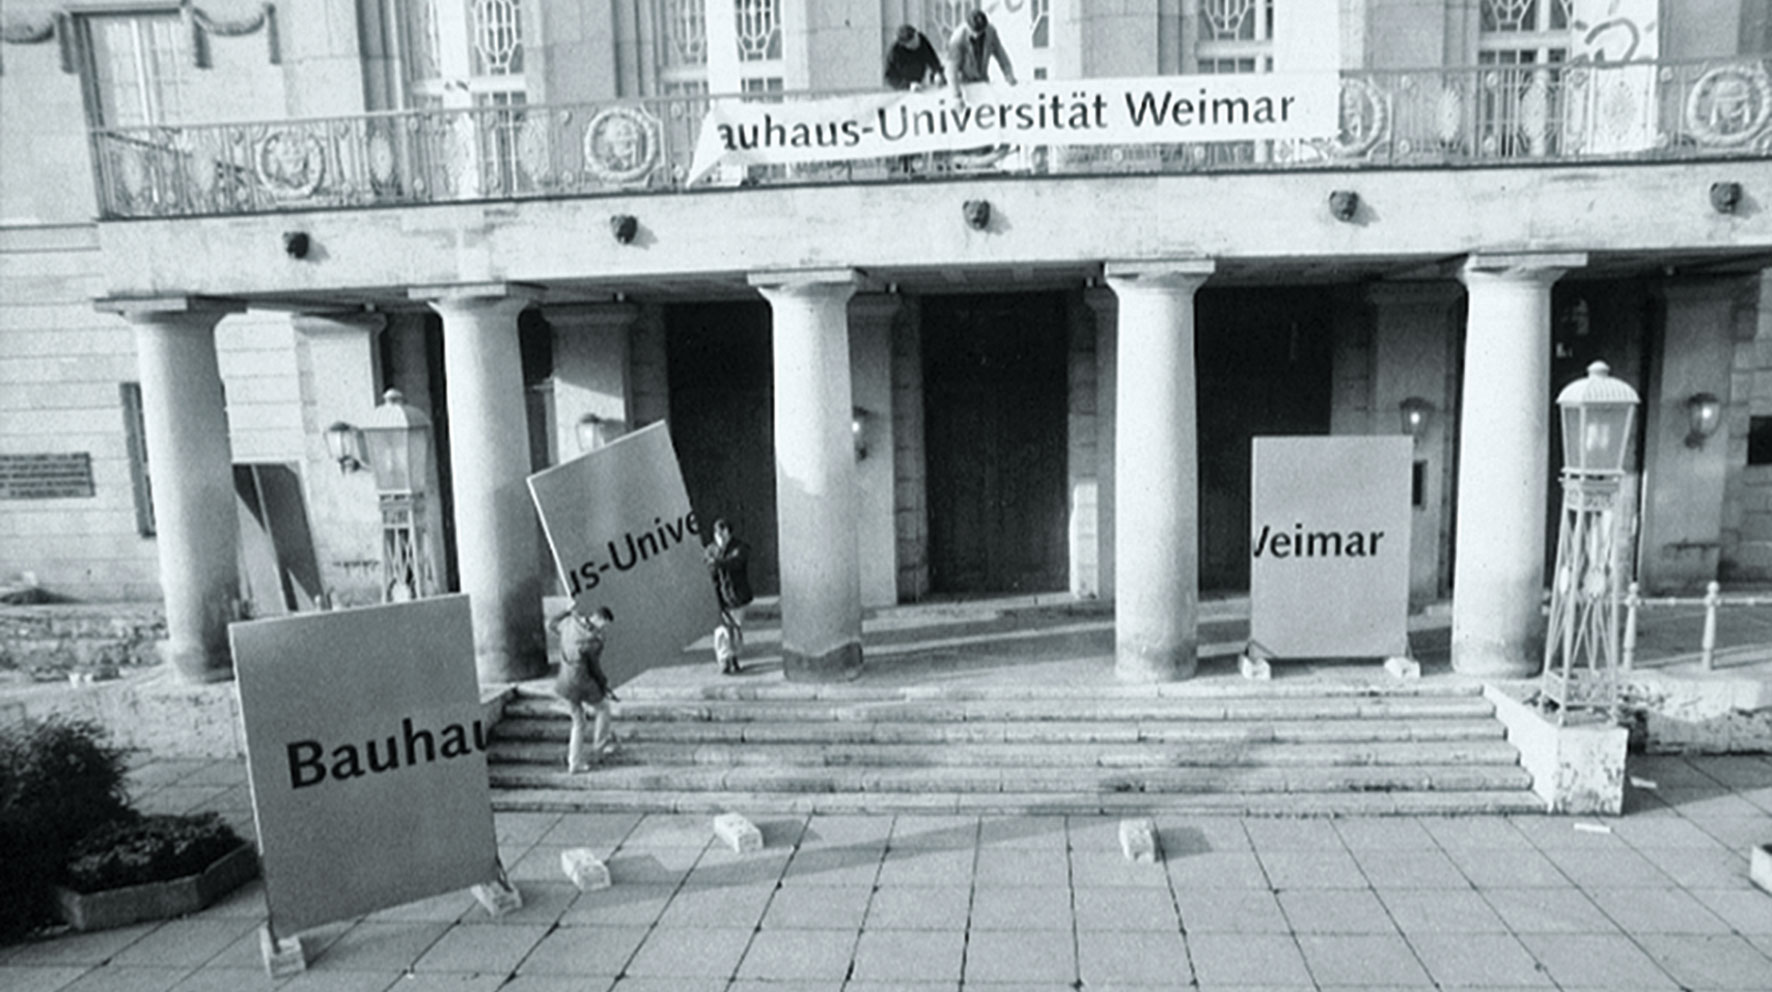 Naming Bauhaus-Universität Weimar